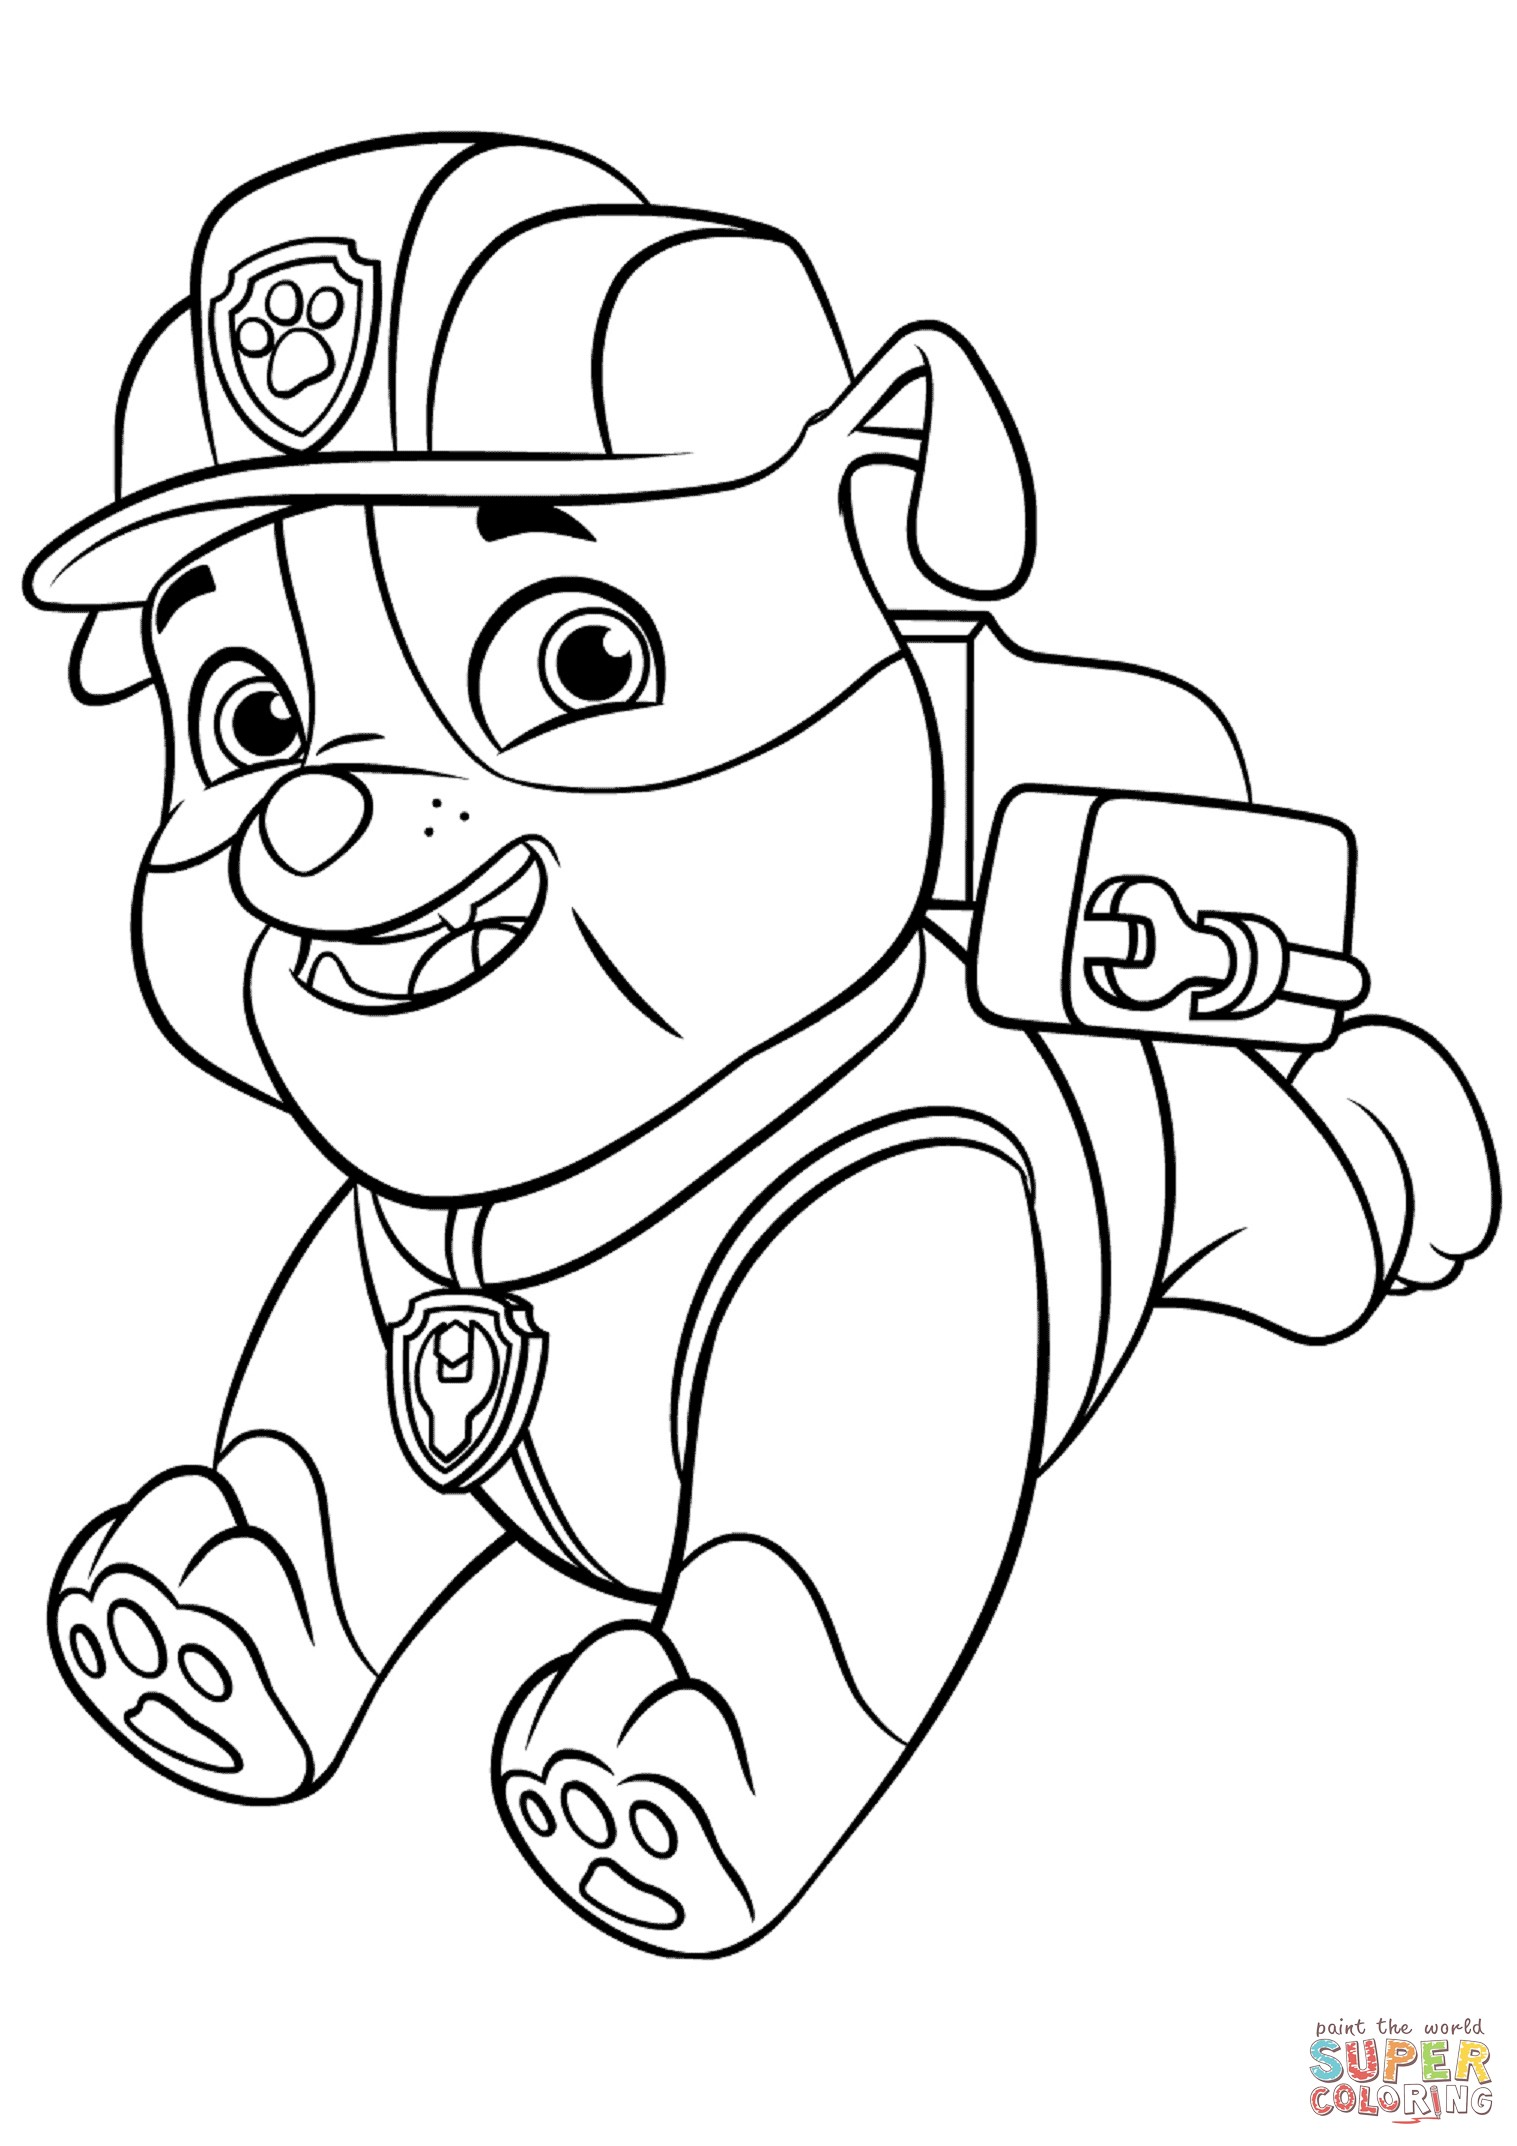 1517x2146 Paw Patrol Vehicles Coloring Pages Best Of Best Paw Patrol